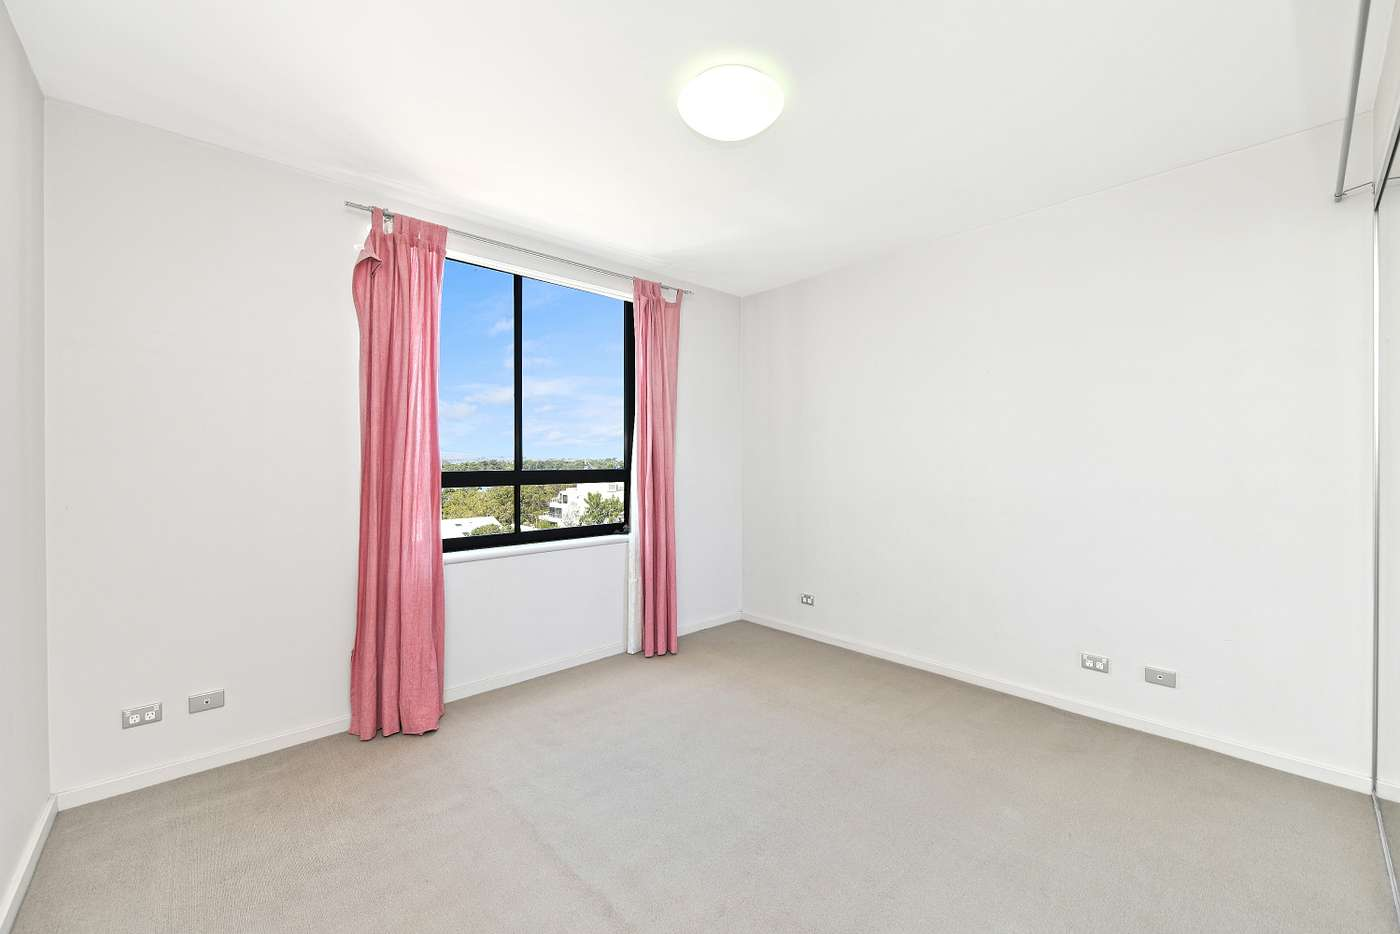 Sixth view of Homely apartment listing, 601/18 Walker Street, Rhodes NSW 2138